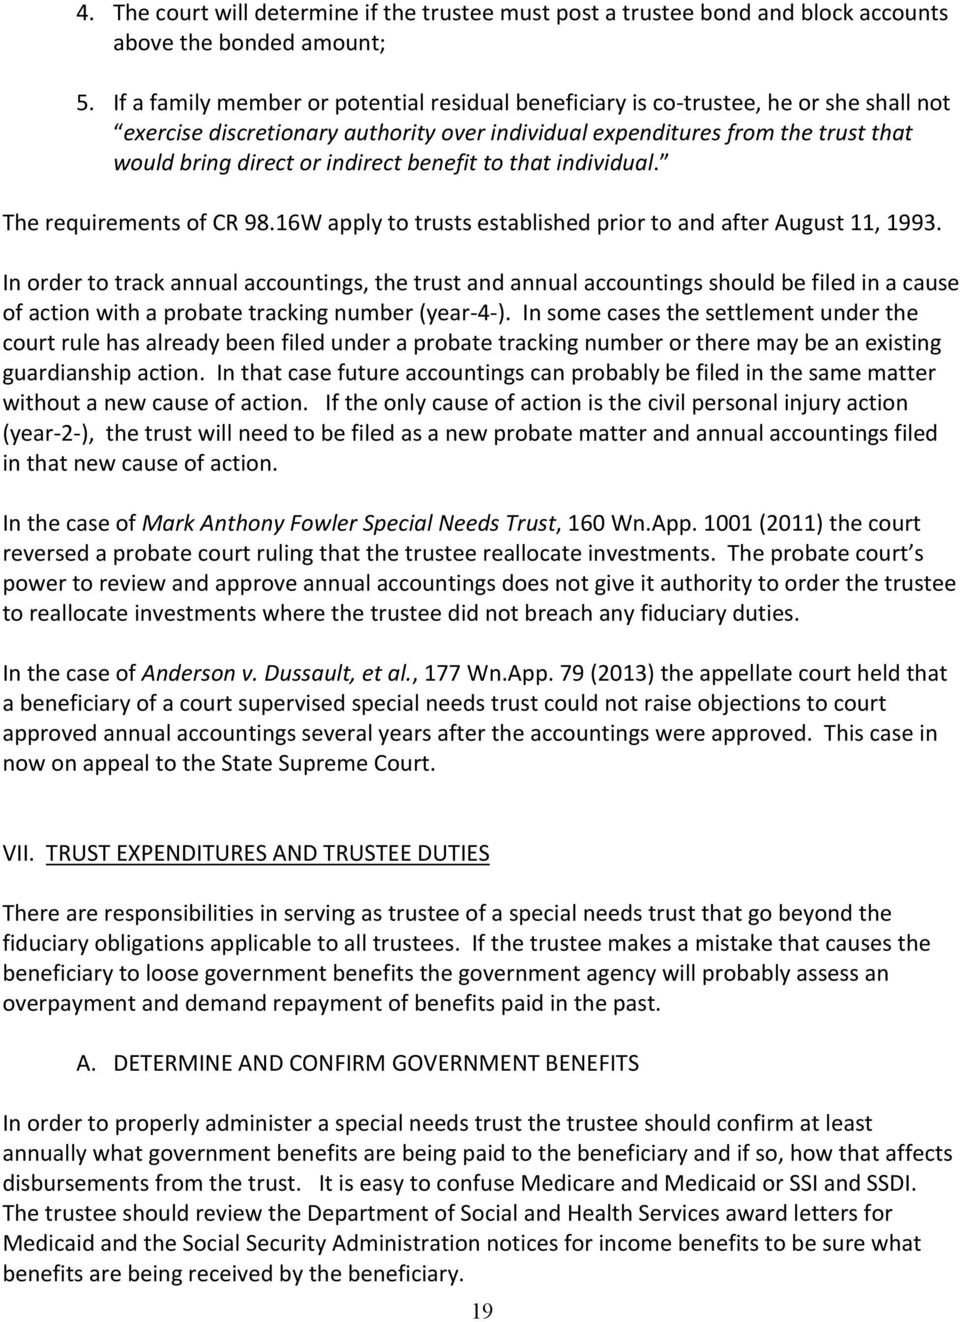 indirect benefit to that individual. The requirements of CR 98.16W apply to trusts established prior to and after August 11, 1993.